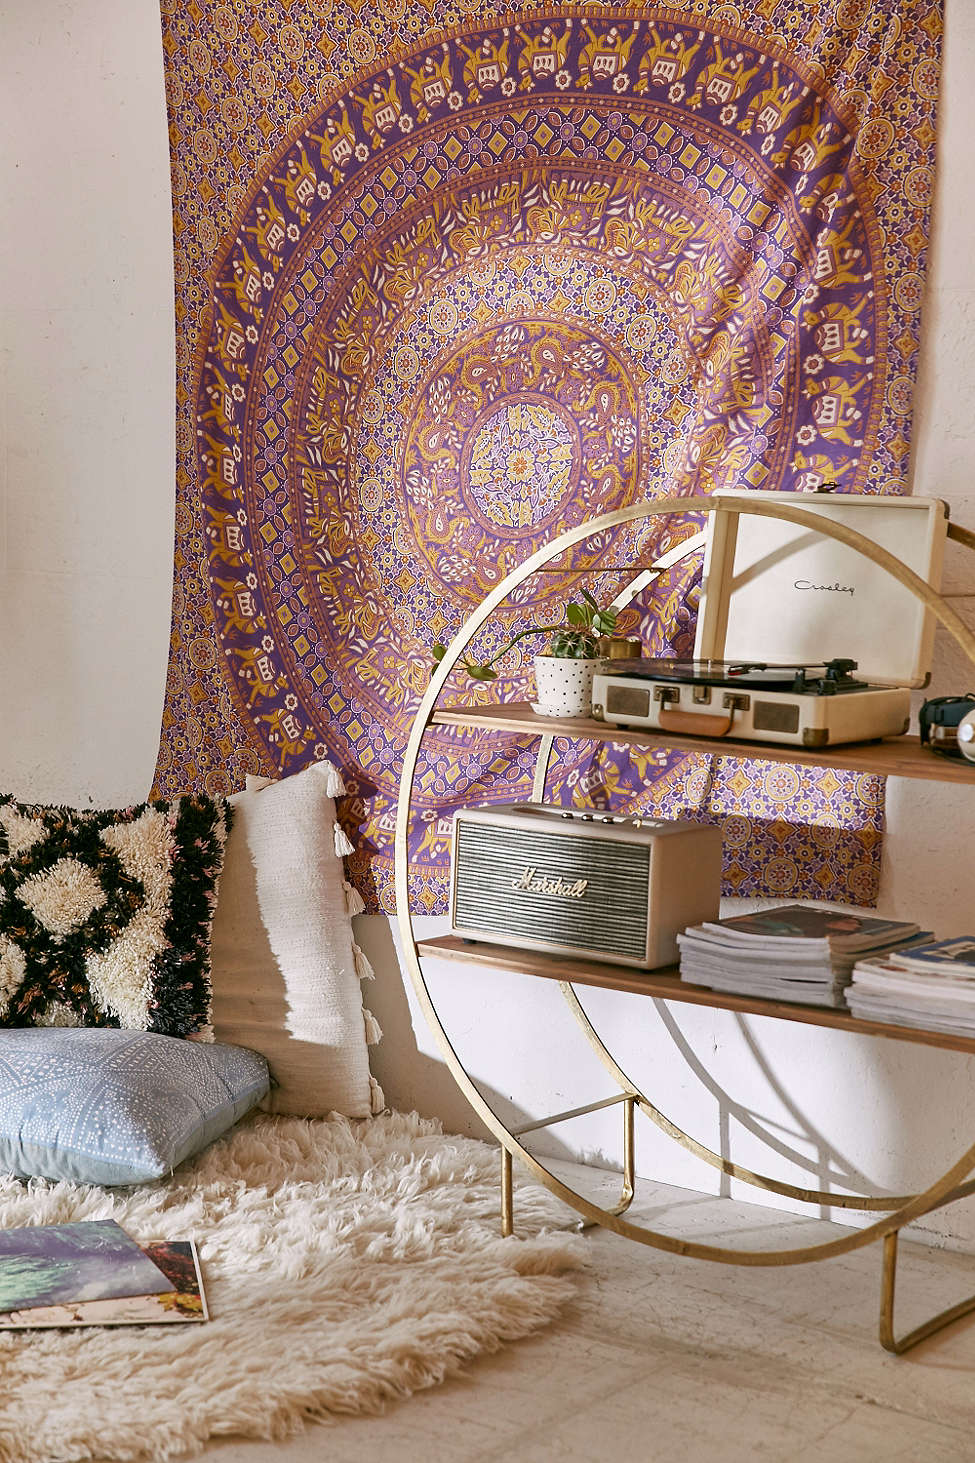 How To Decorate Small Second Living Room Off Of Kitchen: » Decorate With Tapestry